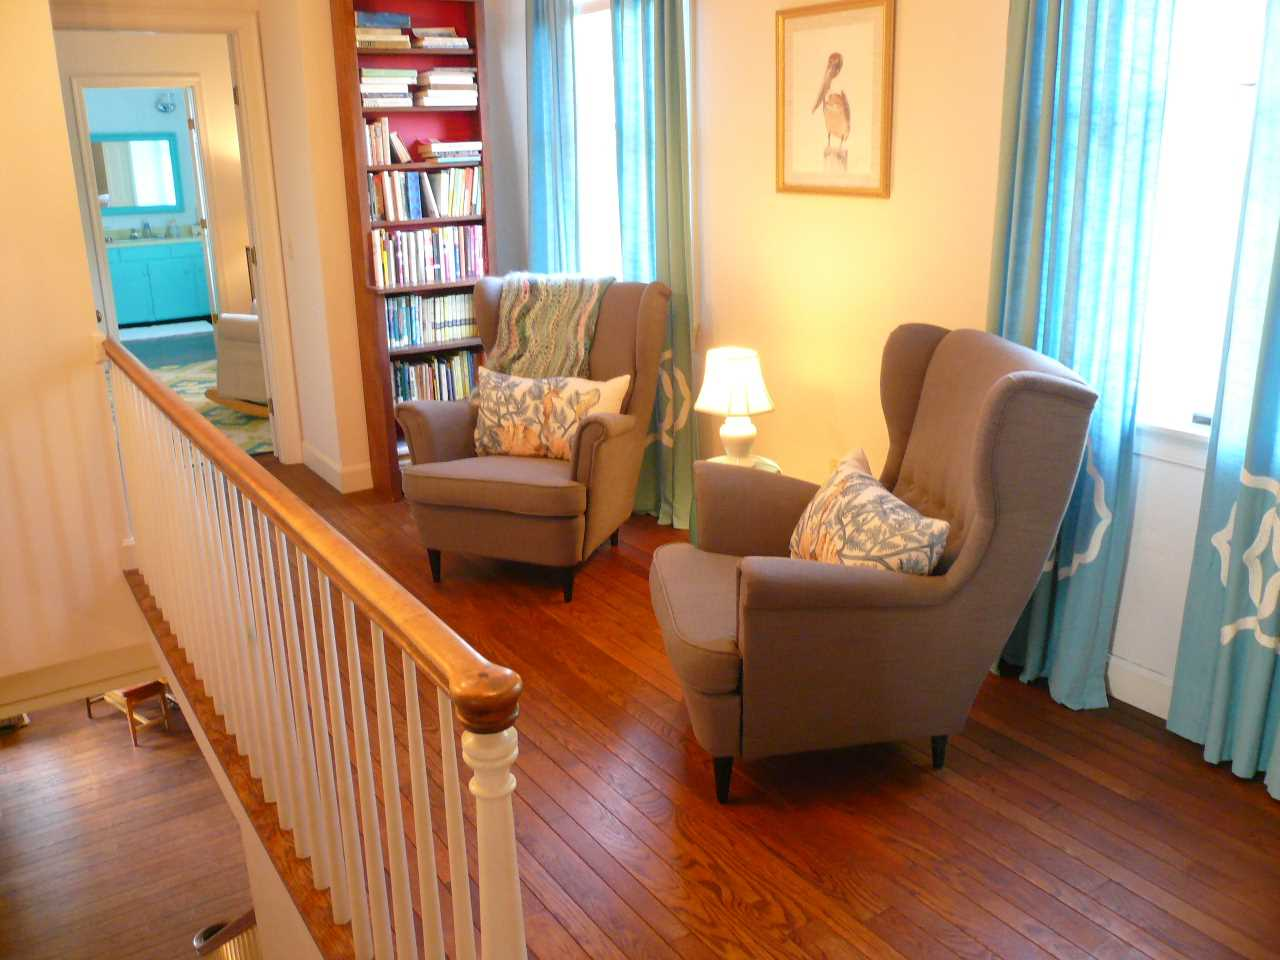 Upstairs seating area